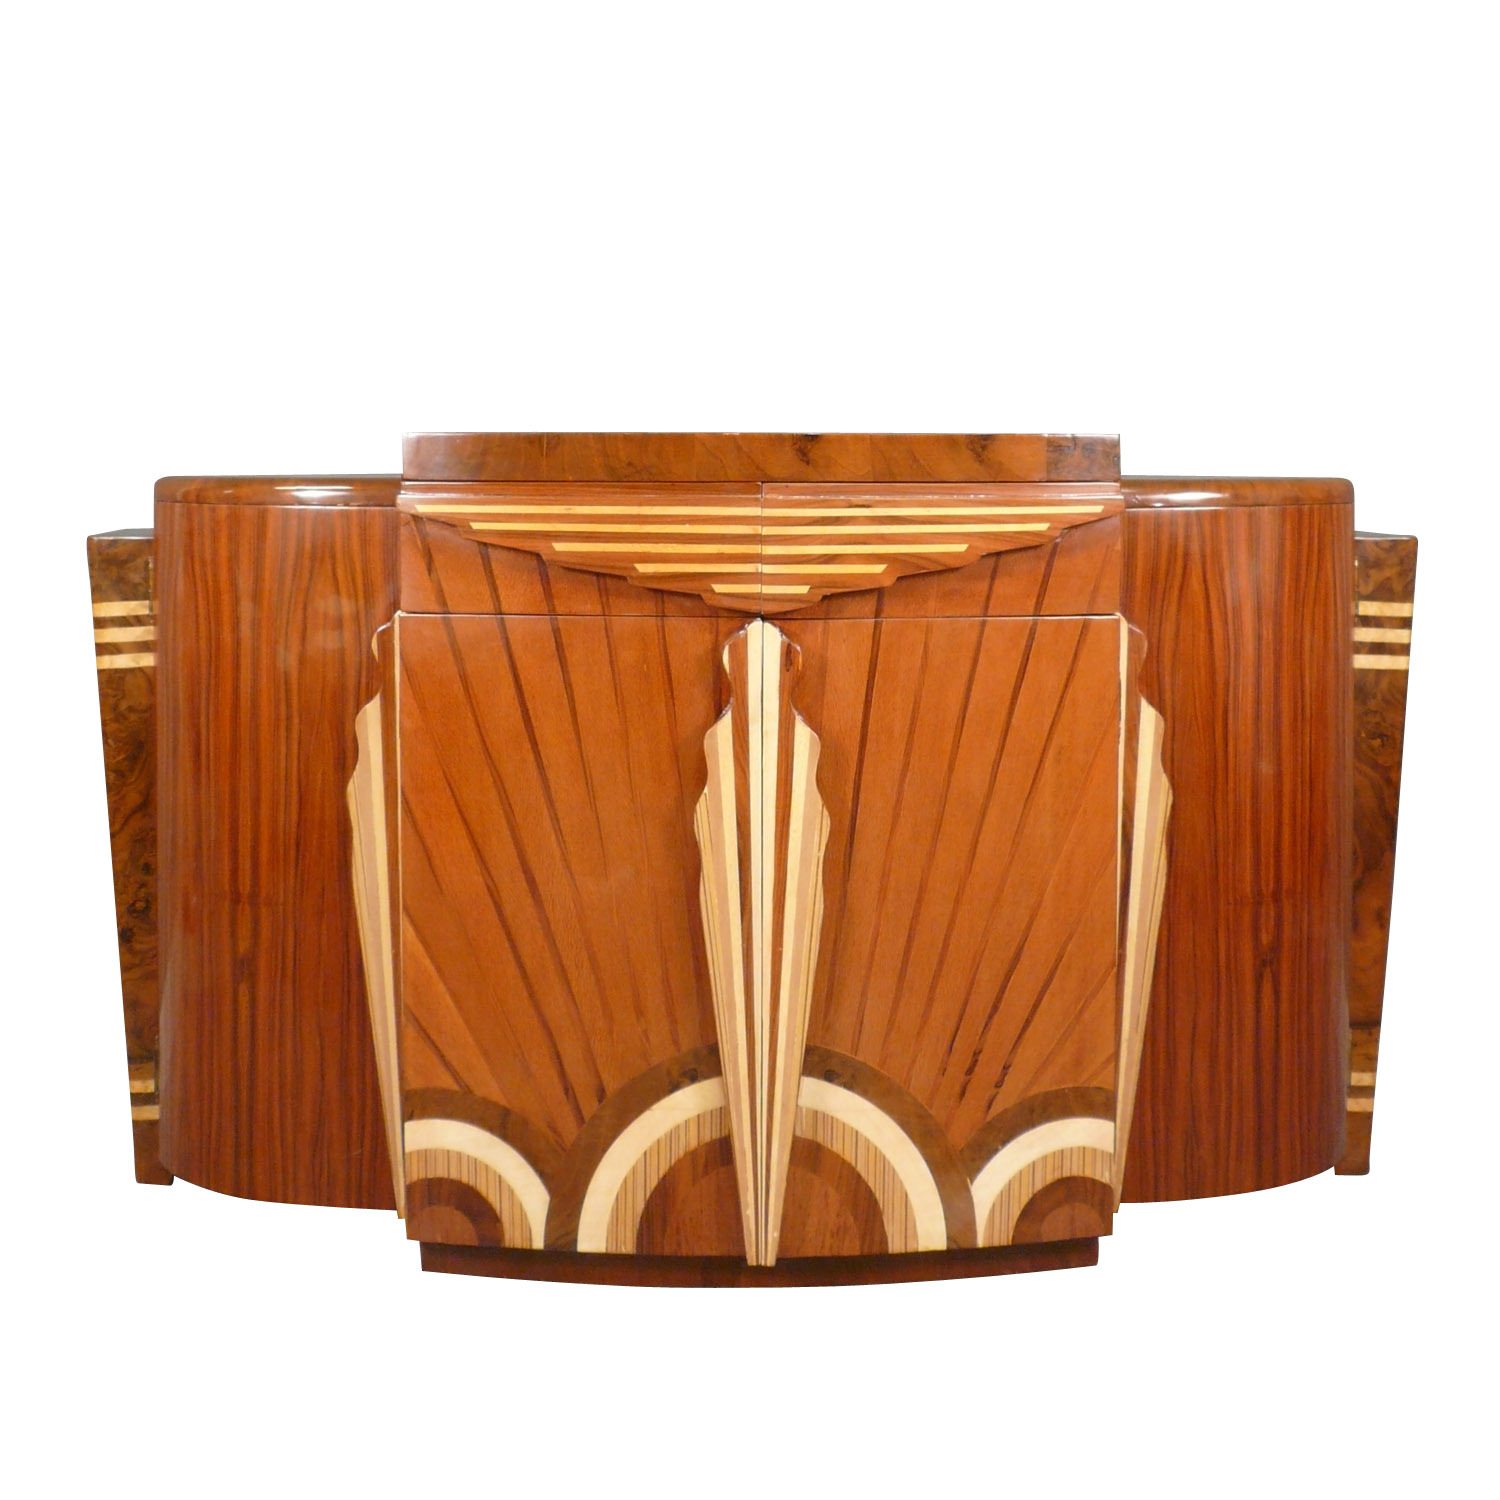 Photo Art Deco Le Mobilier Art Déco En Photo Console Art Déco Canapé